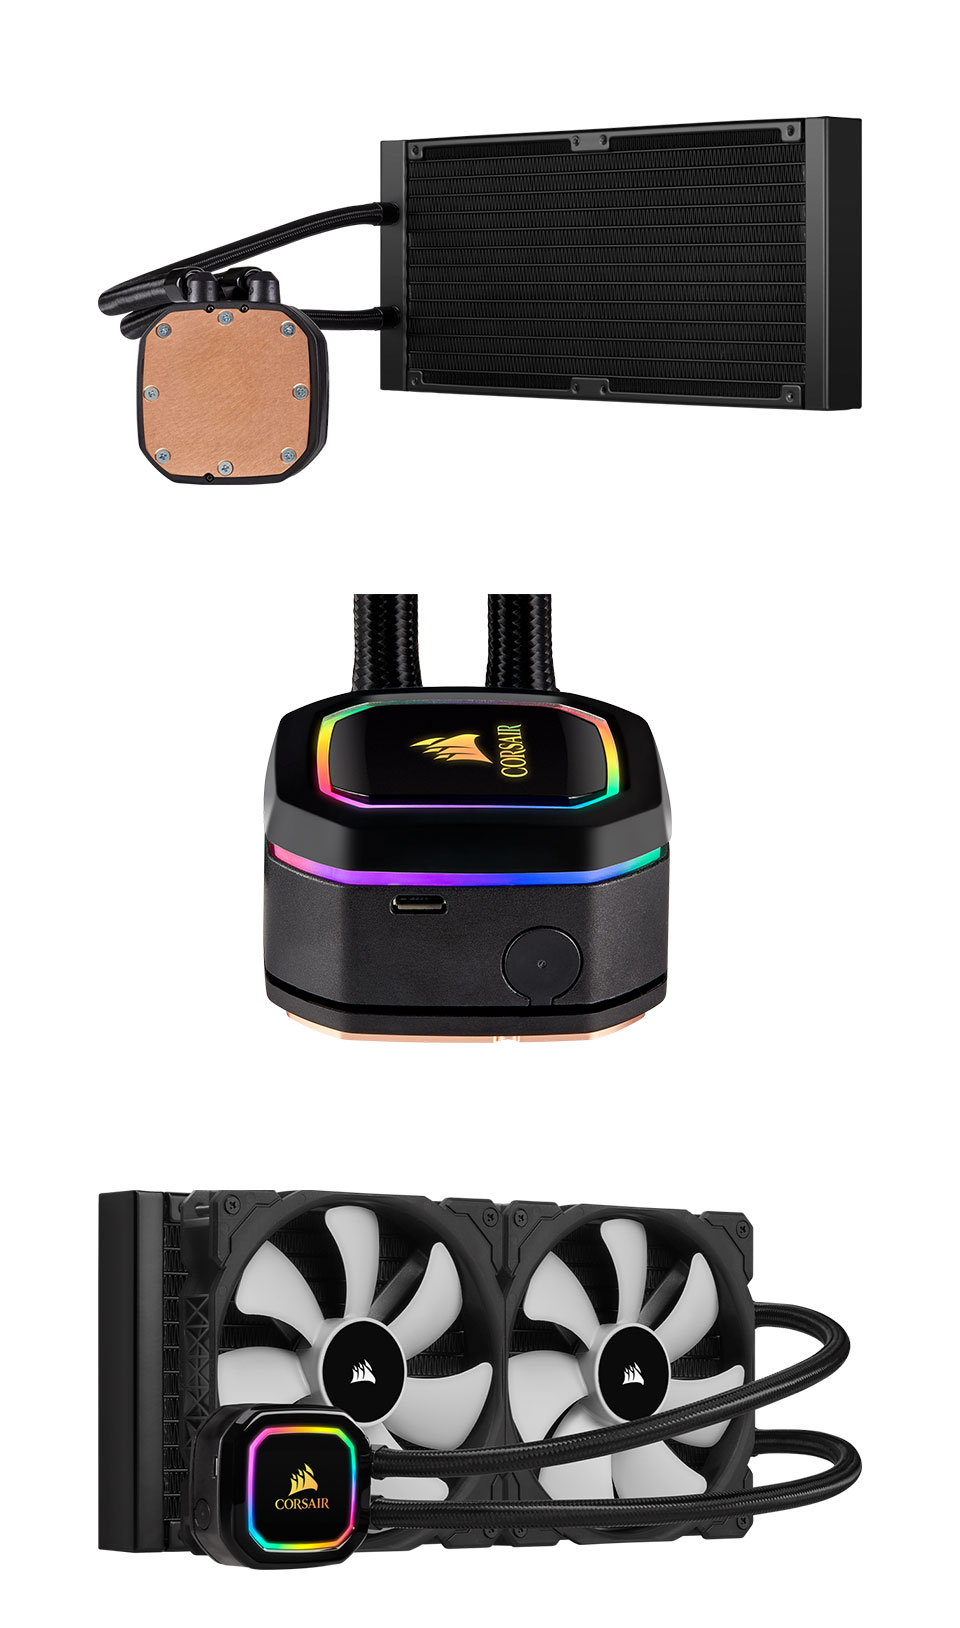 Corsair iCUE H115i RGB Pro XT 280mm AIO CPU Cooler product